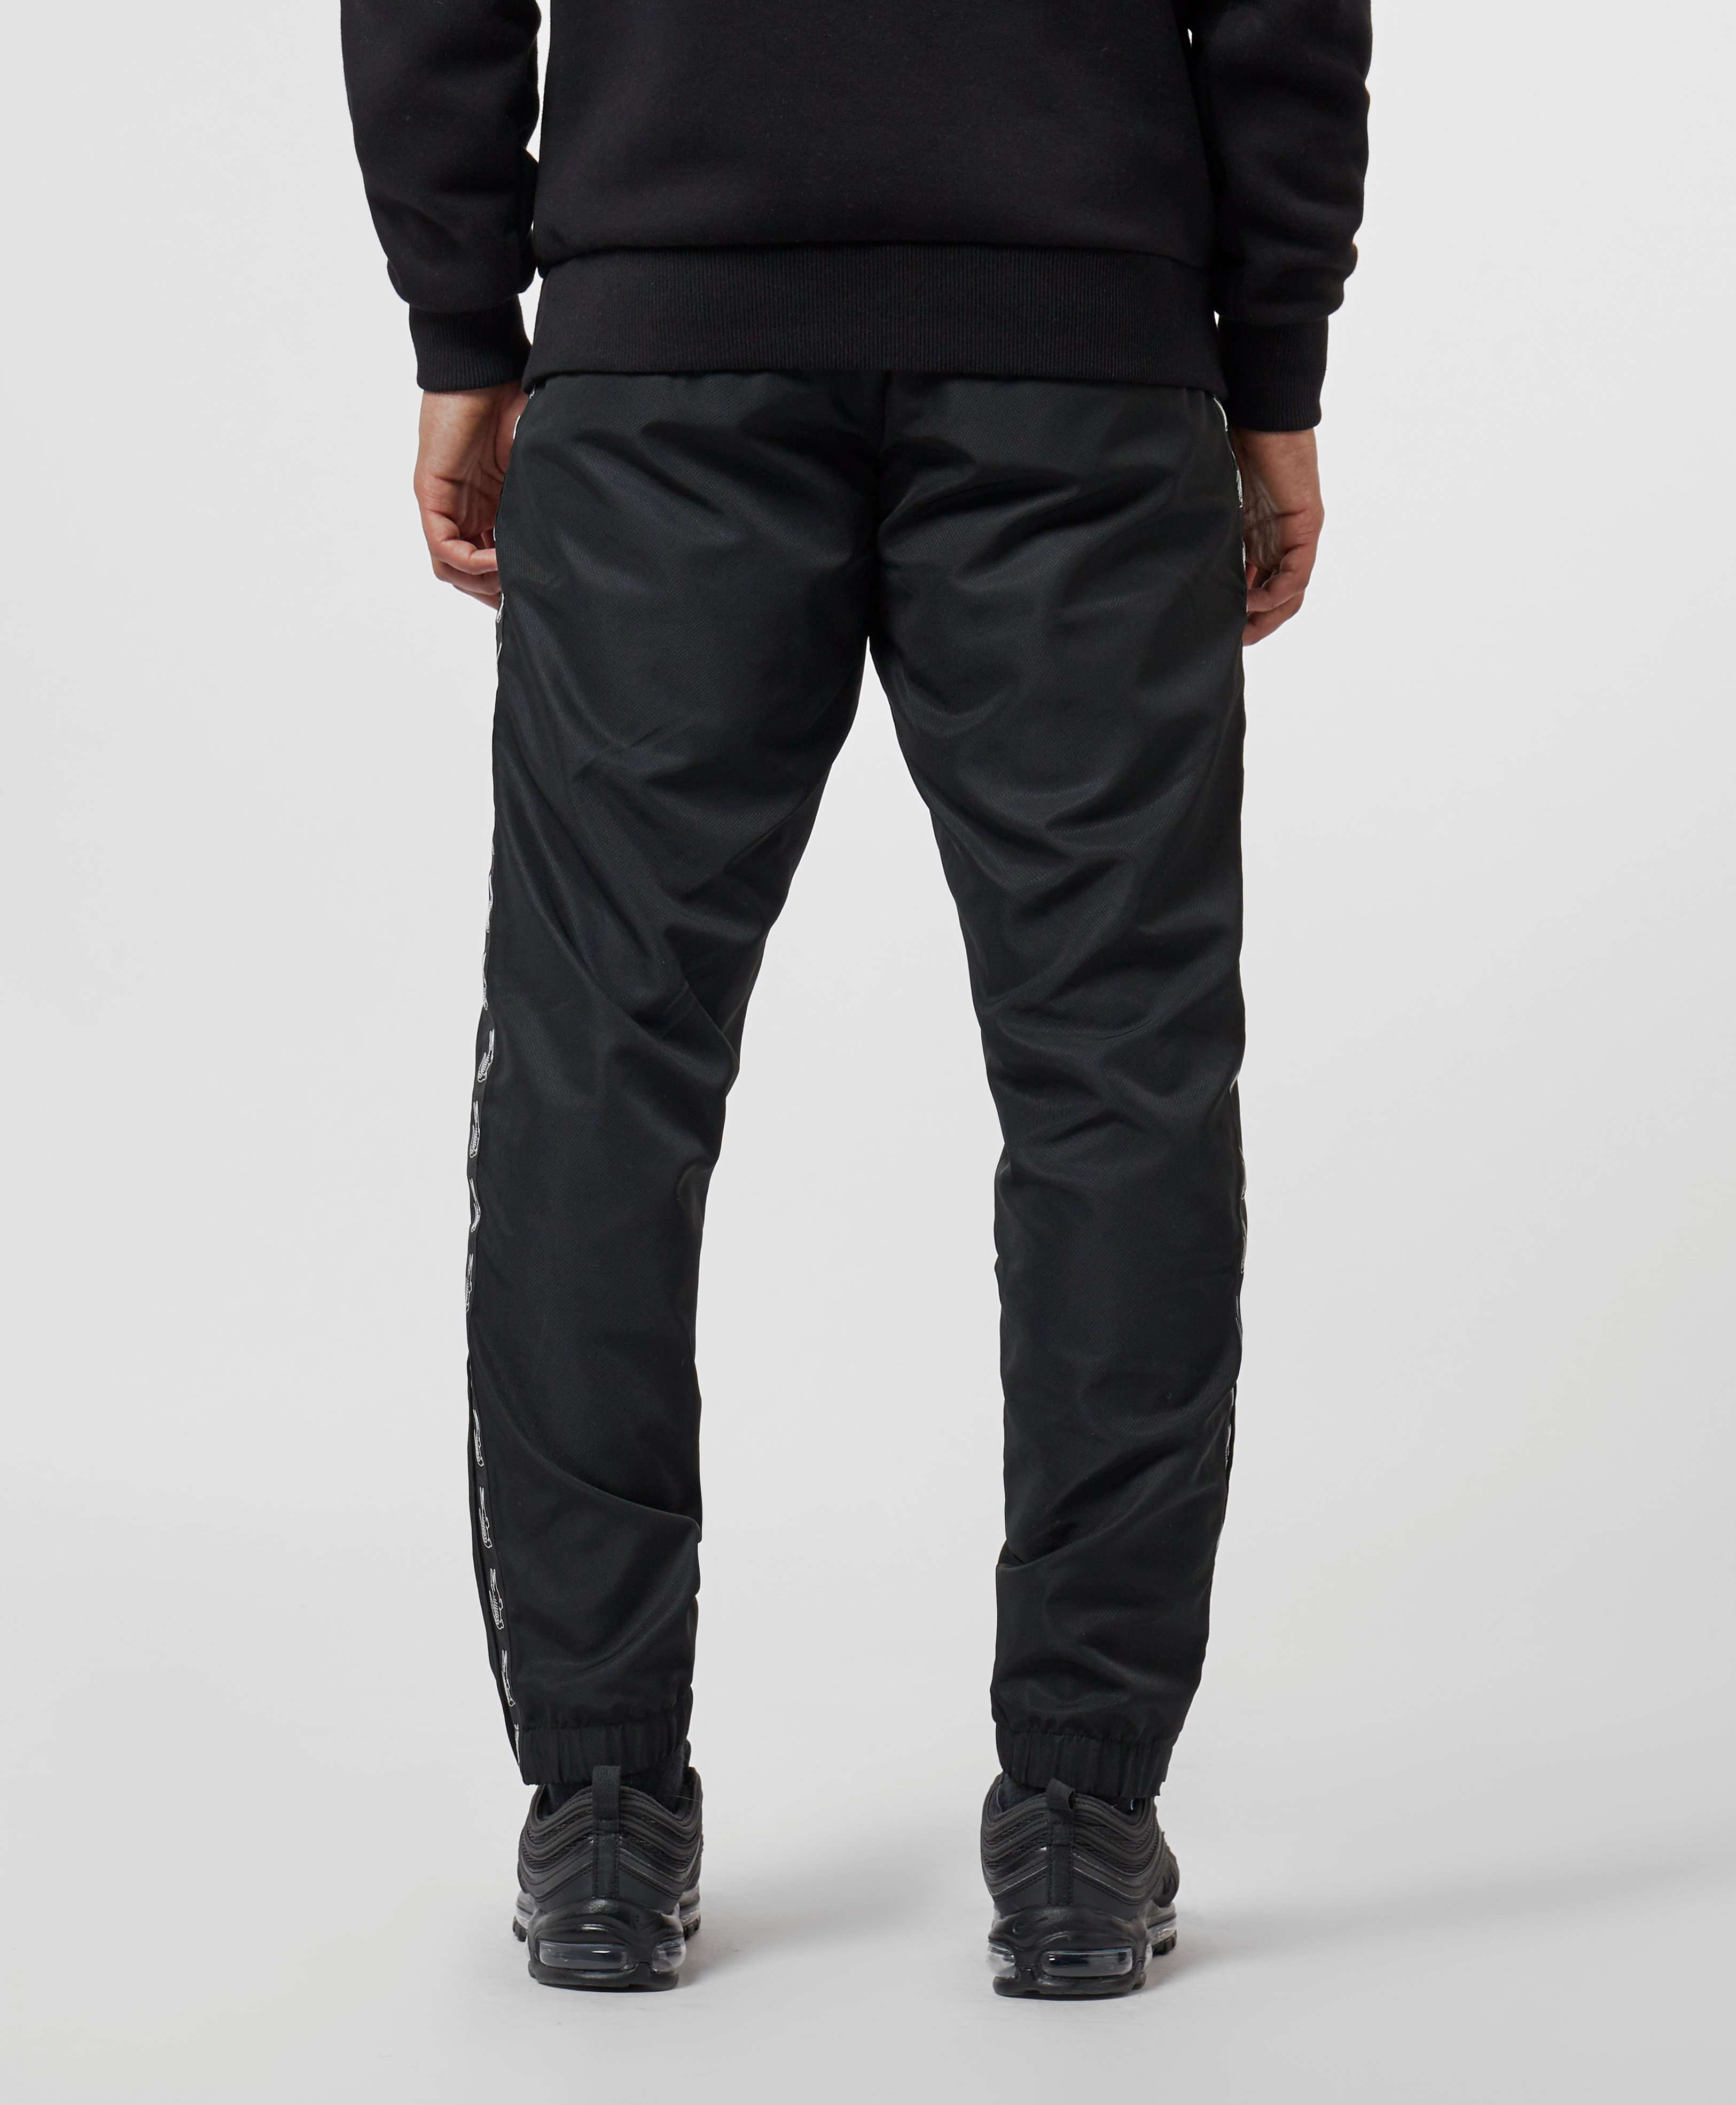 Lacoste Tape Poly Track Pants - Online Exclusive